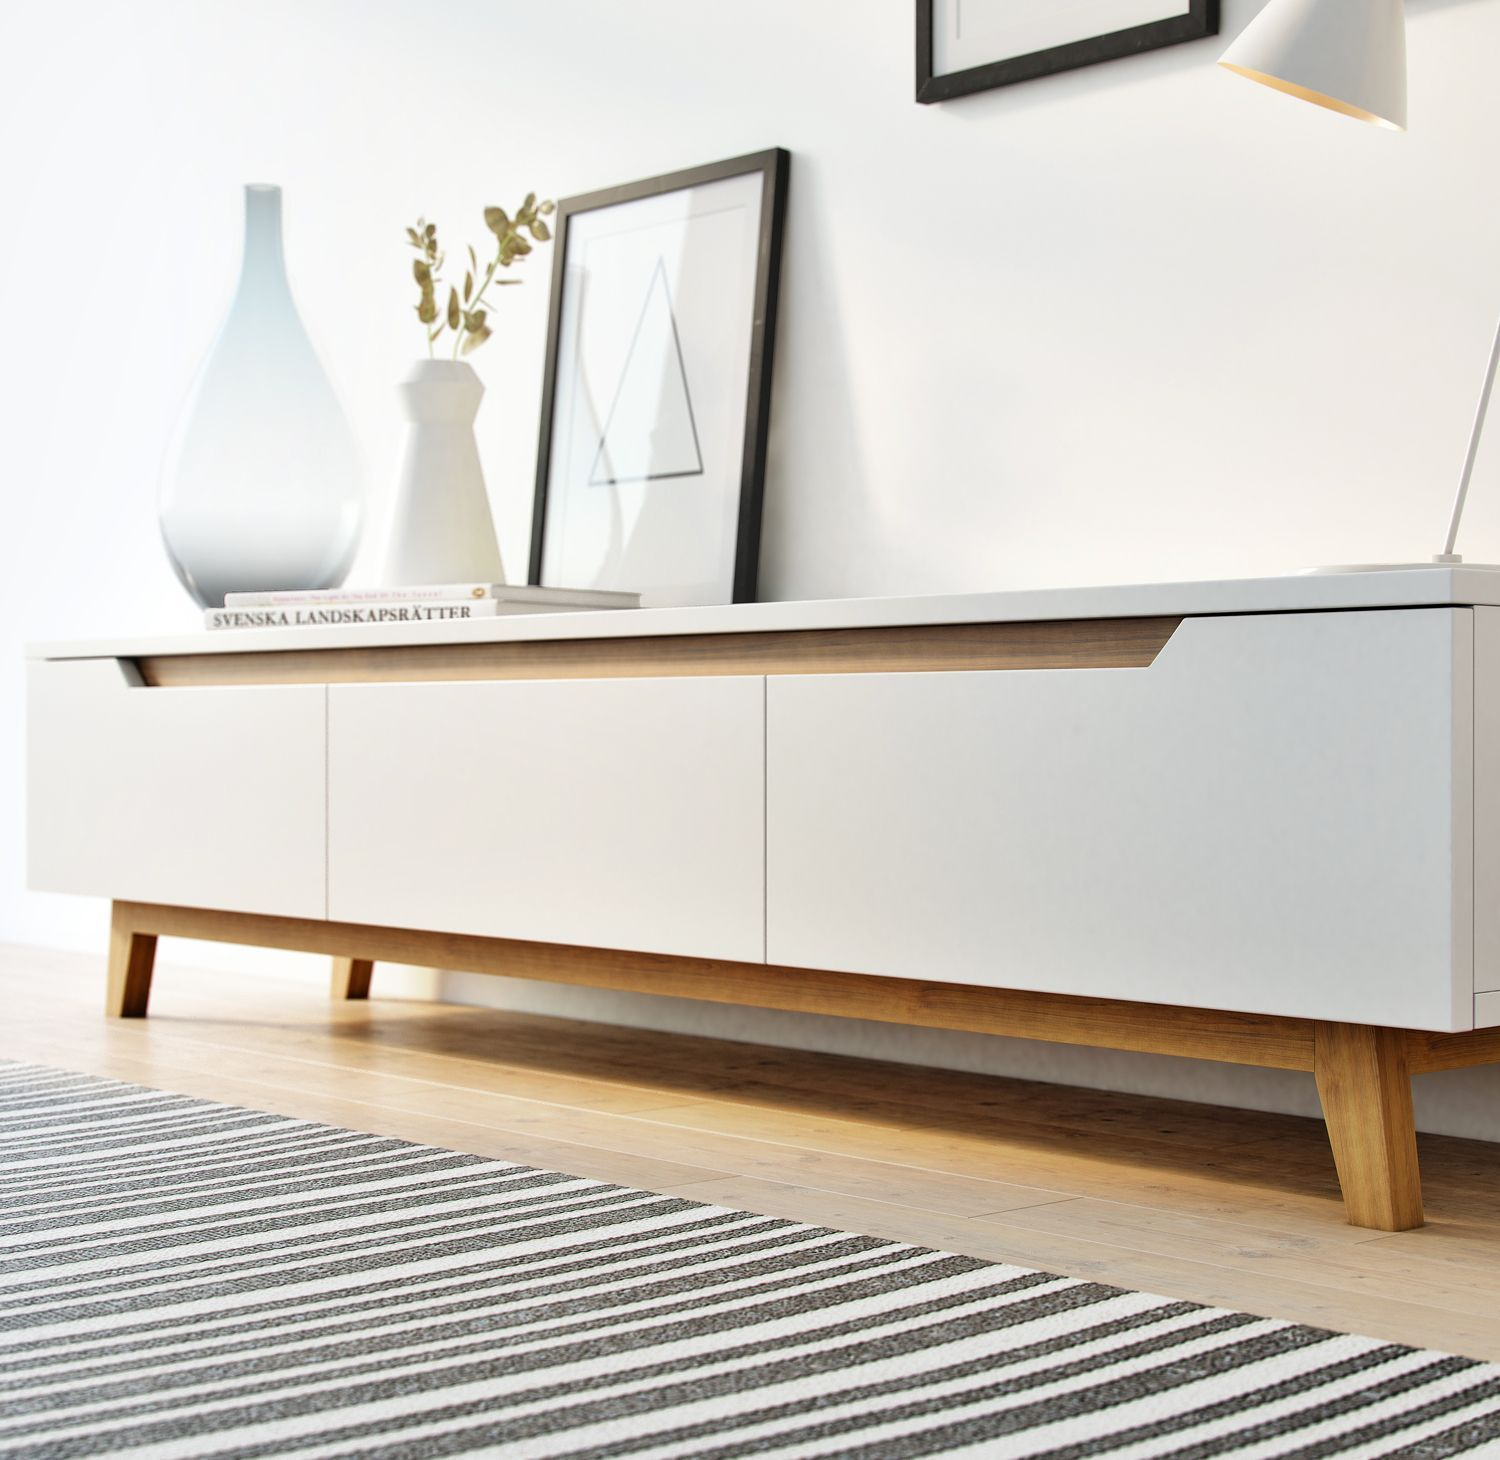 Best 15 Simple Modern Tv Stand Design Ideas For Your Home Tvstand Diytvstand Entertai Scandinavian Furniture Design Living Room Scandinavian Living Room Tv